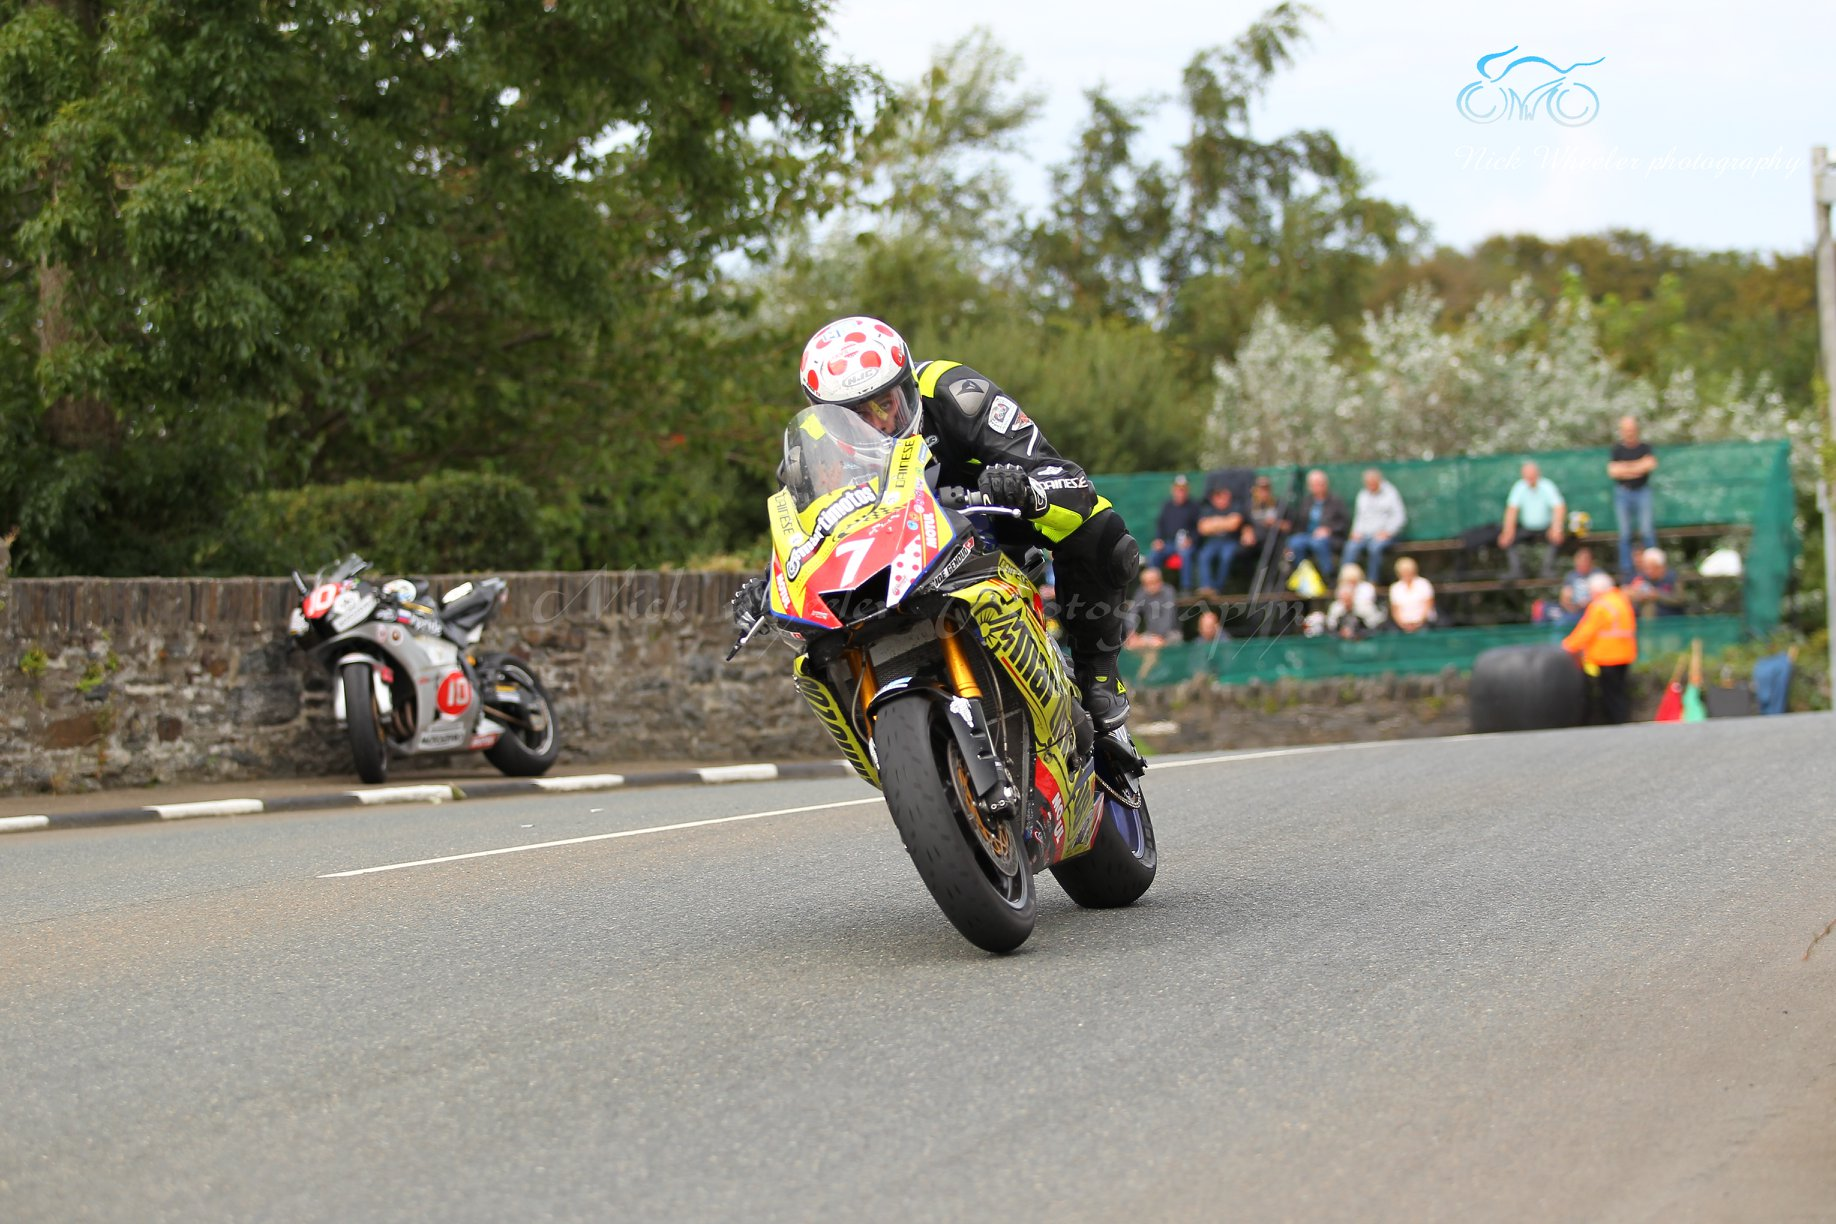 Yves Bian Records Supersport Double, Ups Championship Lead